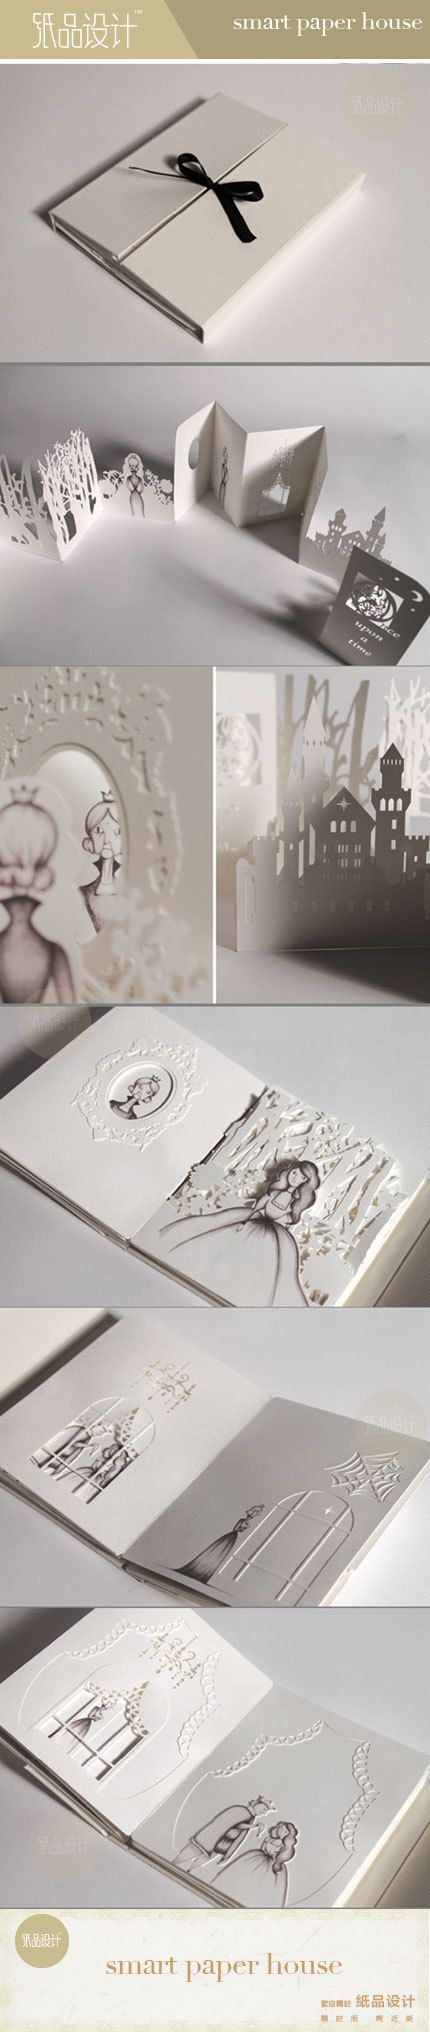 The Hiroko Matshushita The paper-cut book works